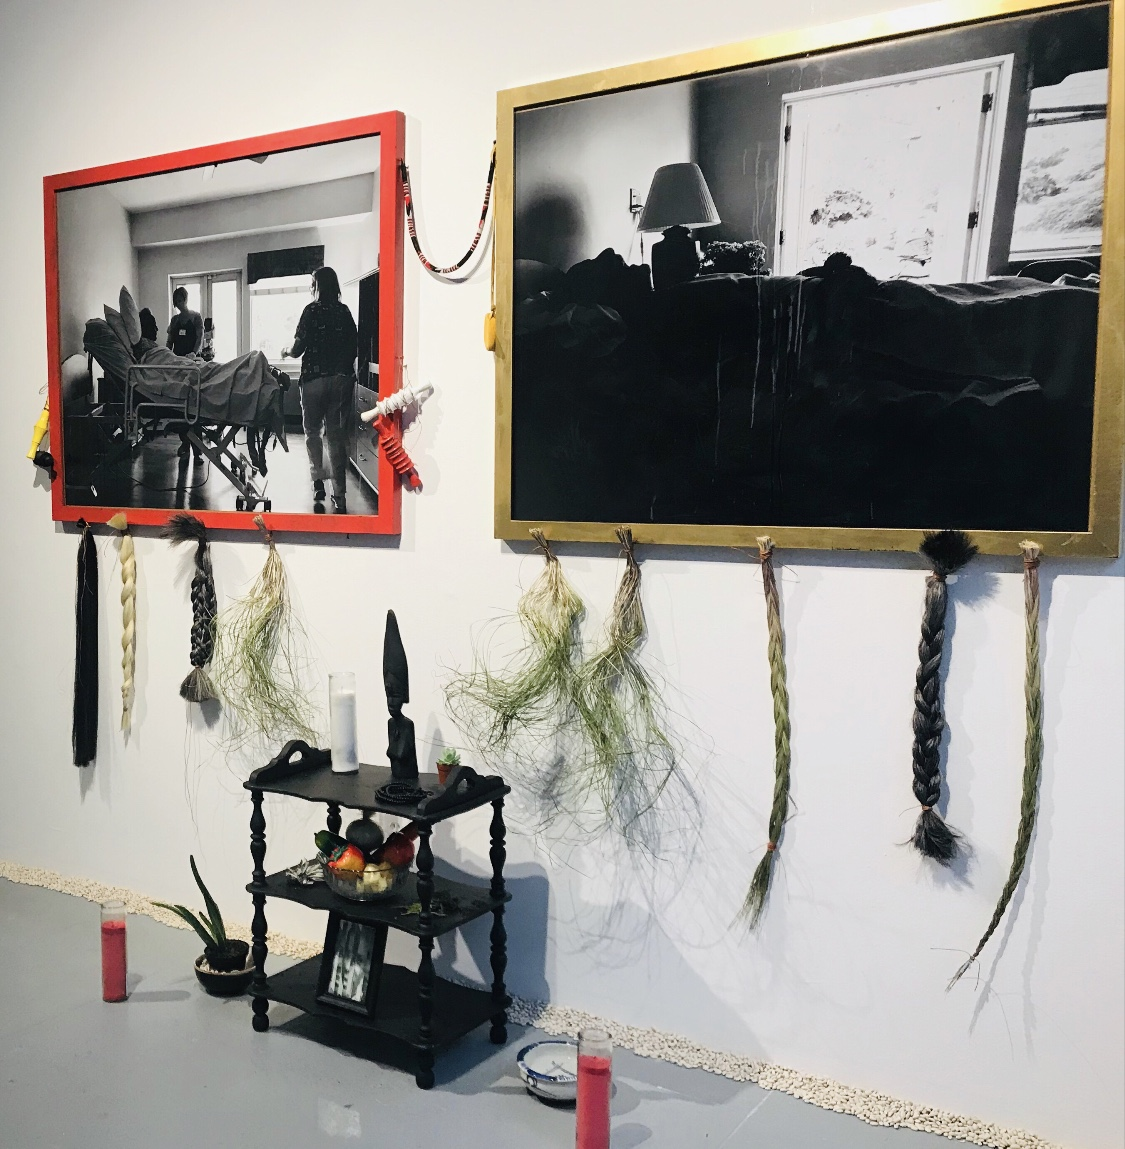 "Akhsó (Grandma): This Is A New Experience, 2019 & Skin Hunger/the Artist As Caregiver, 2018 - —Black & white iPhone image, printed on vinyl; mixed media construction—Sound Piece (originally published Anomaly, Issue 27)In The Presence of Absence/EFA PROJECT SPACE         3.27 thru 5.11This site specific intervention of the sacred examines the in-between; the before and after death through the experience of the artist's grandmother, Vivian Murphy. In her own words knowing ""you're about to pass away"" is a new experience. Here, the artist explores the intersections of race, class, gender and the possible meanings associated with the taking of a last breath in a black or brown body aged almost a century in a constructed environment that renders harm through invisibility. Closing out the life you have lived in your raced and gendered body is a ceremony of becoming—a return to human being."